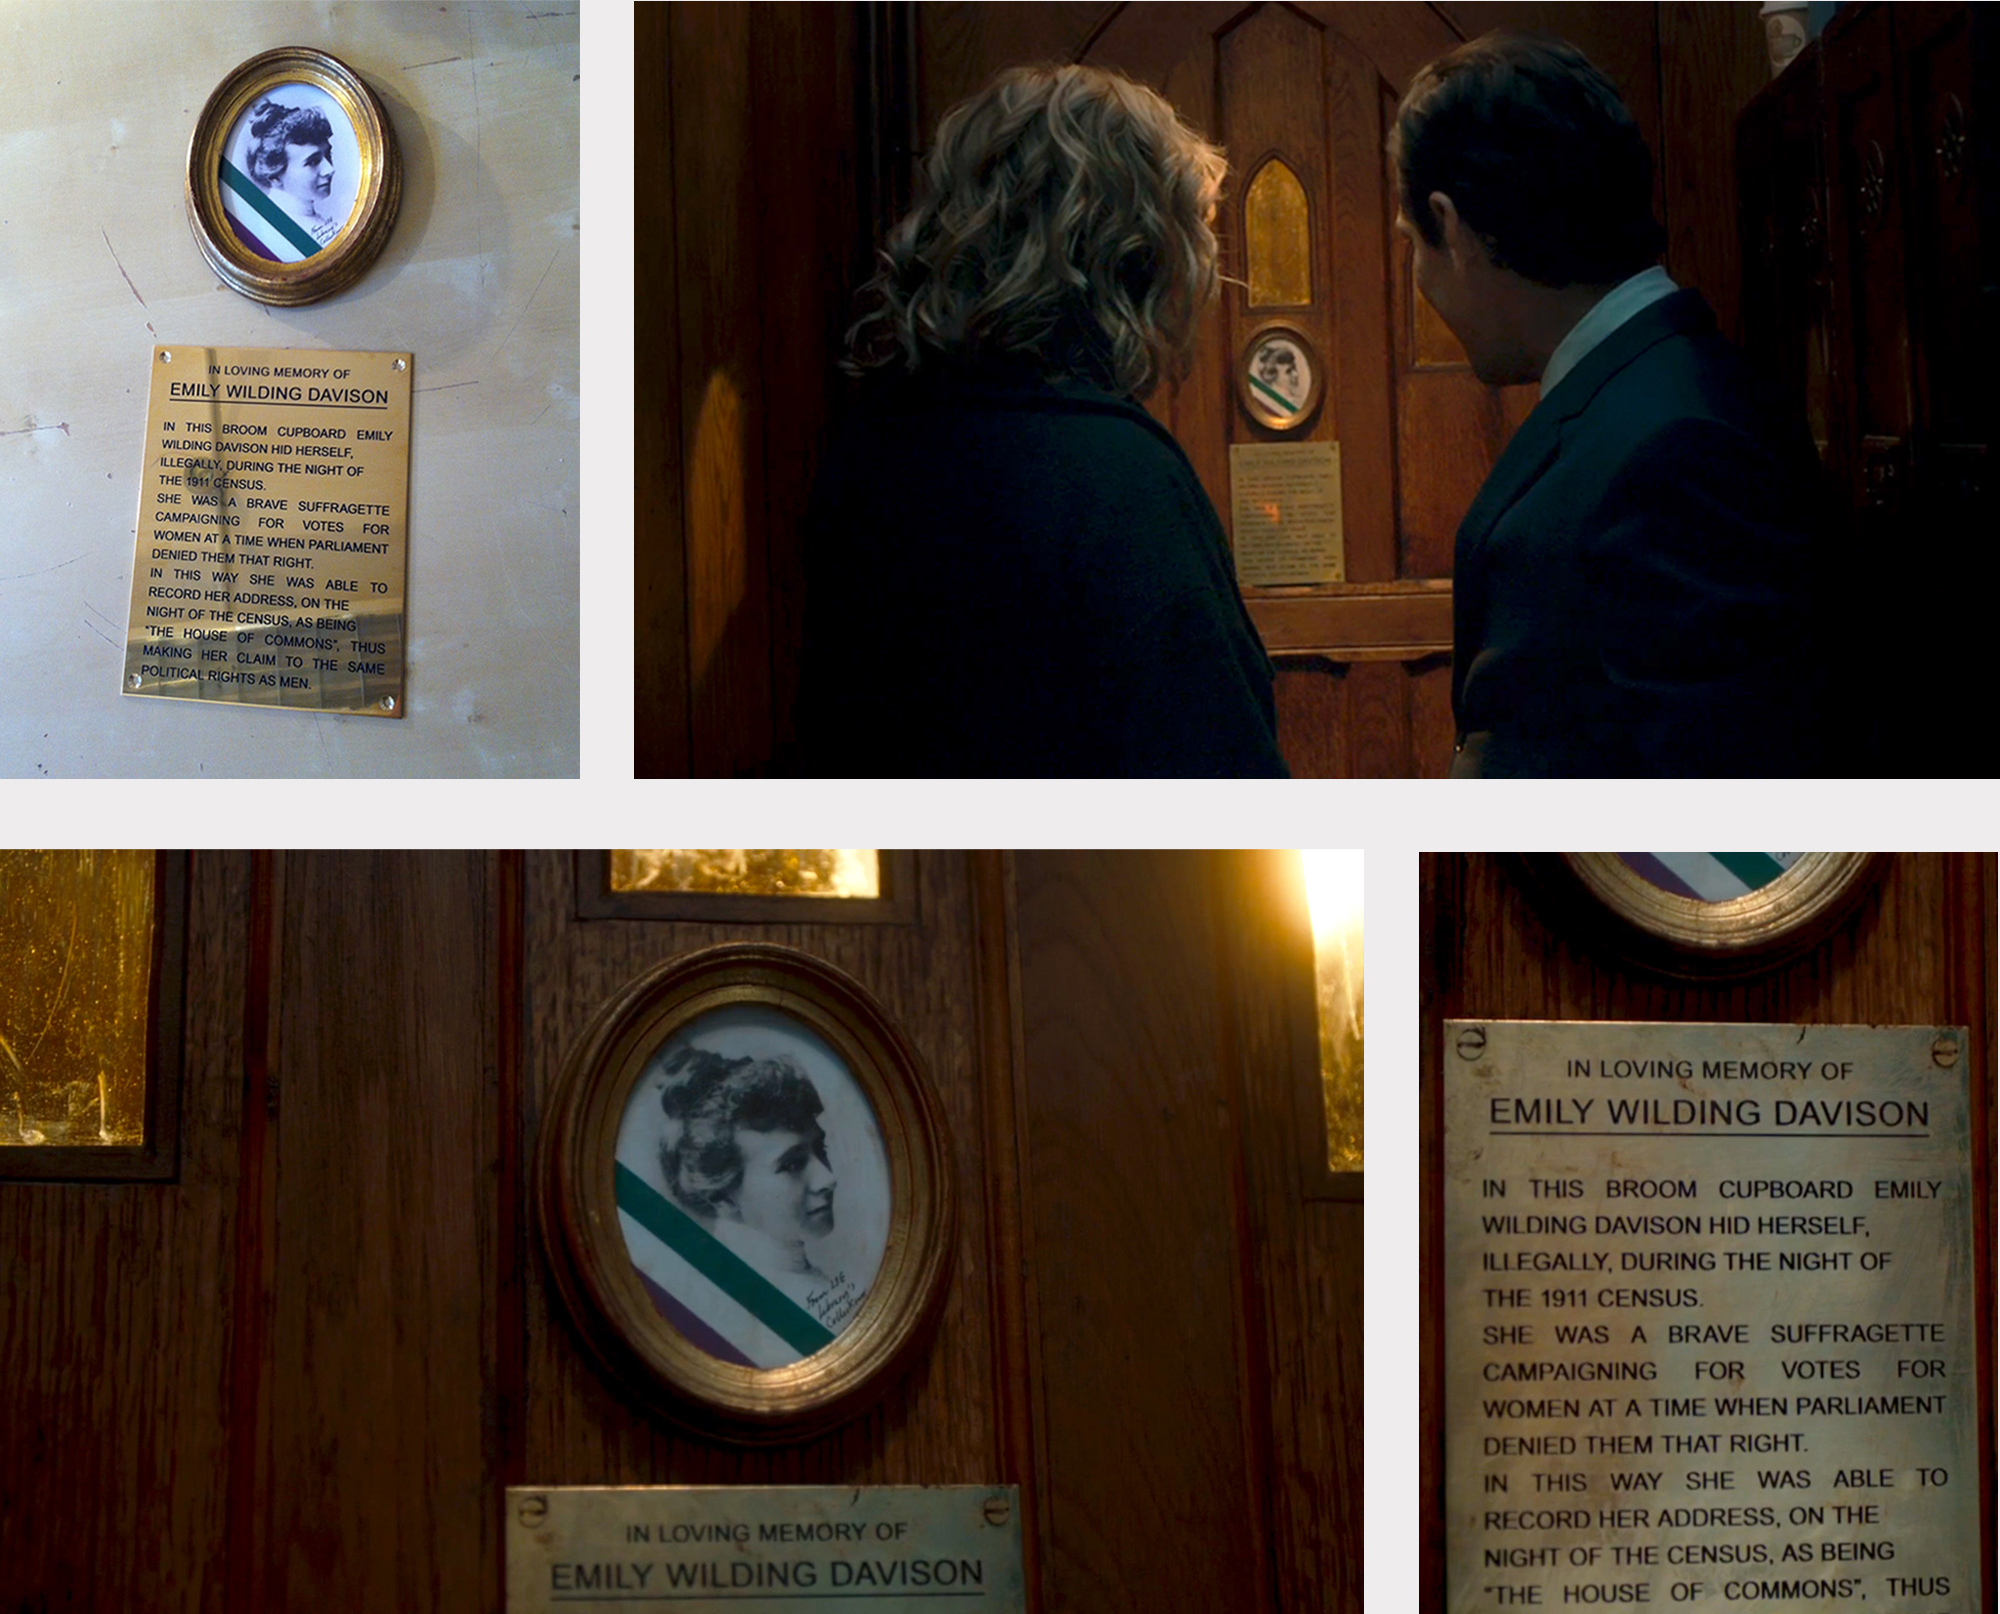 Re-creation of dedication to Emily Wilding Davison, secretly placed in a House of Commons' cupboard by Tony Benn.Etched brass plaque and Women's Library archive photograph.